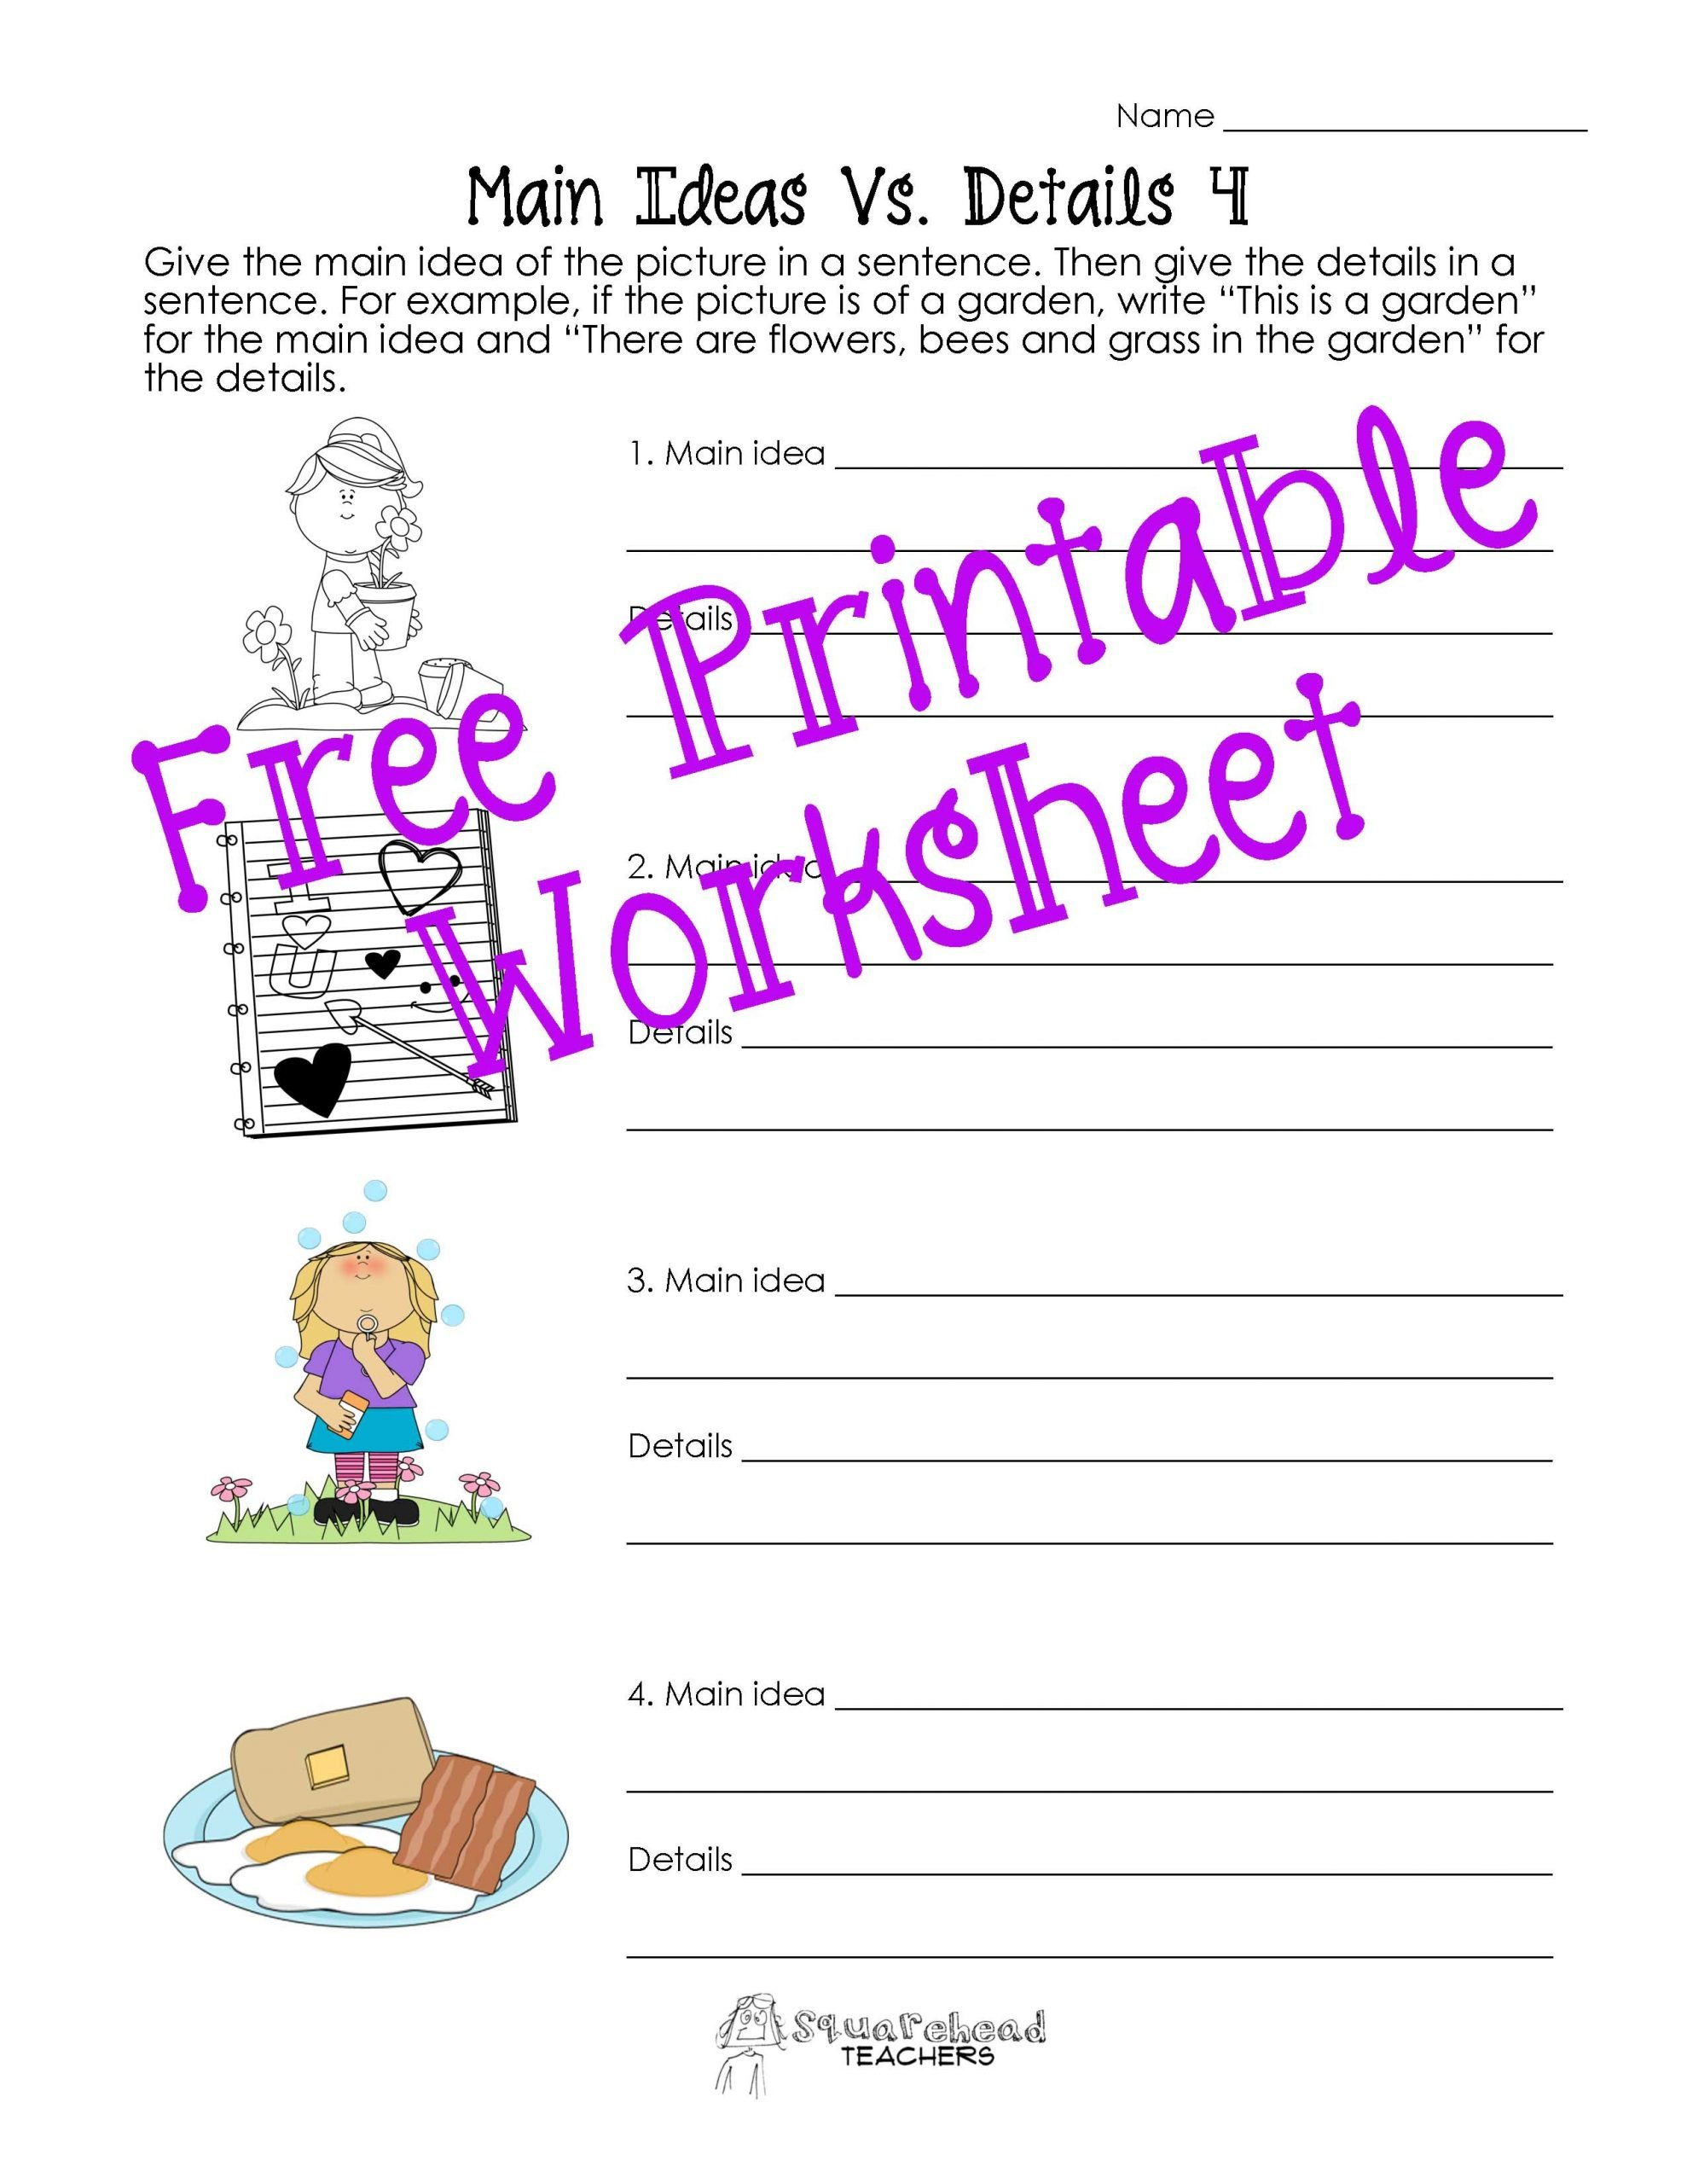 Main Idea Kindergarten Worksheets Main Idea Vs Details Worksheets Post 2